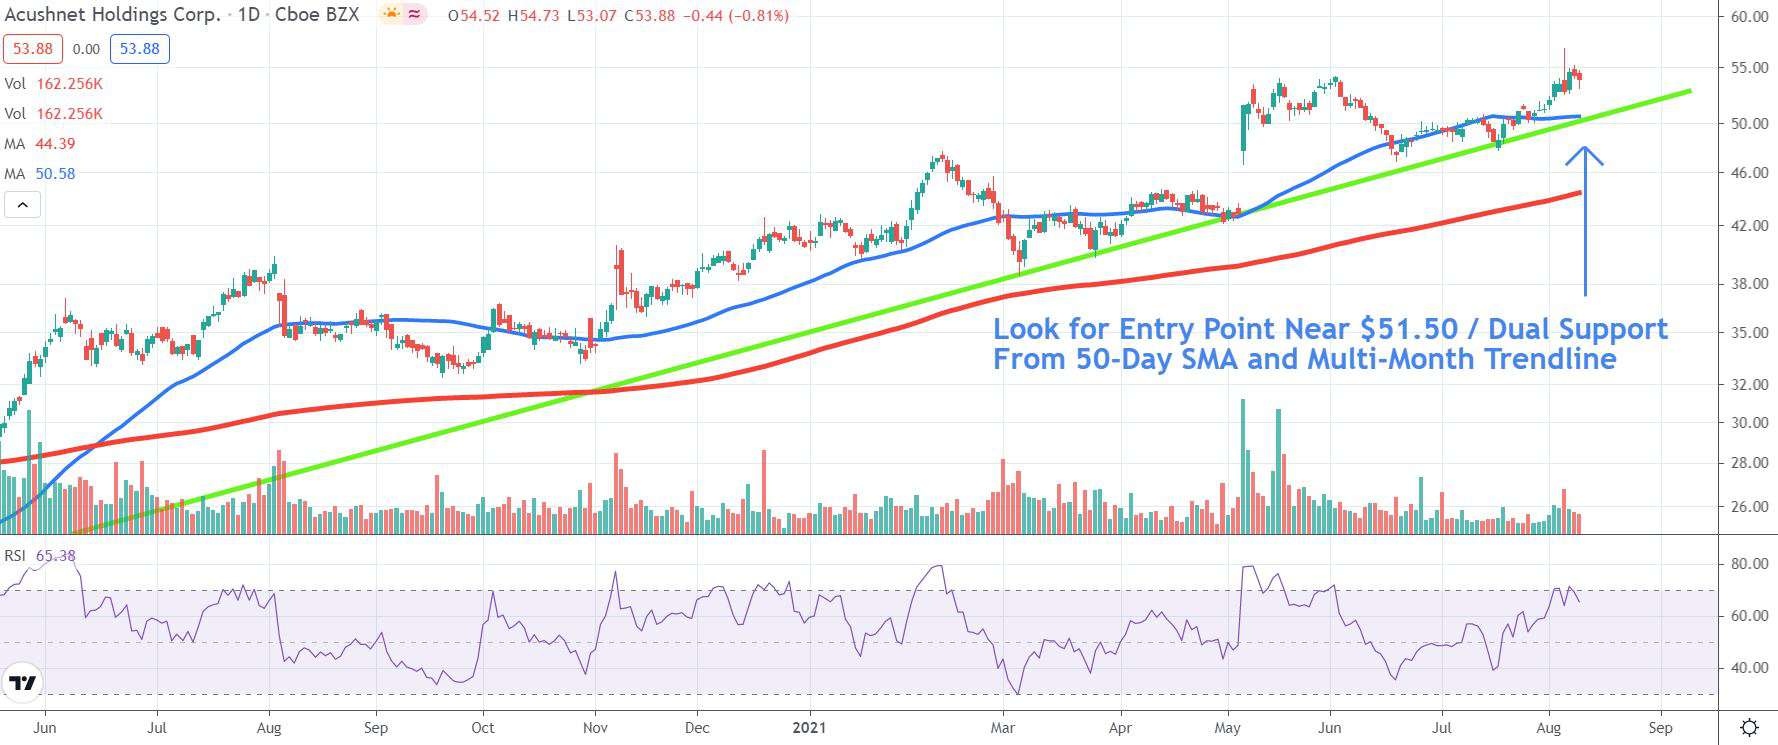 Chart depicting the share price of Acushnet Holdings Corp. (GOLF)